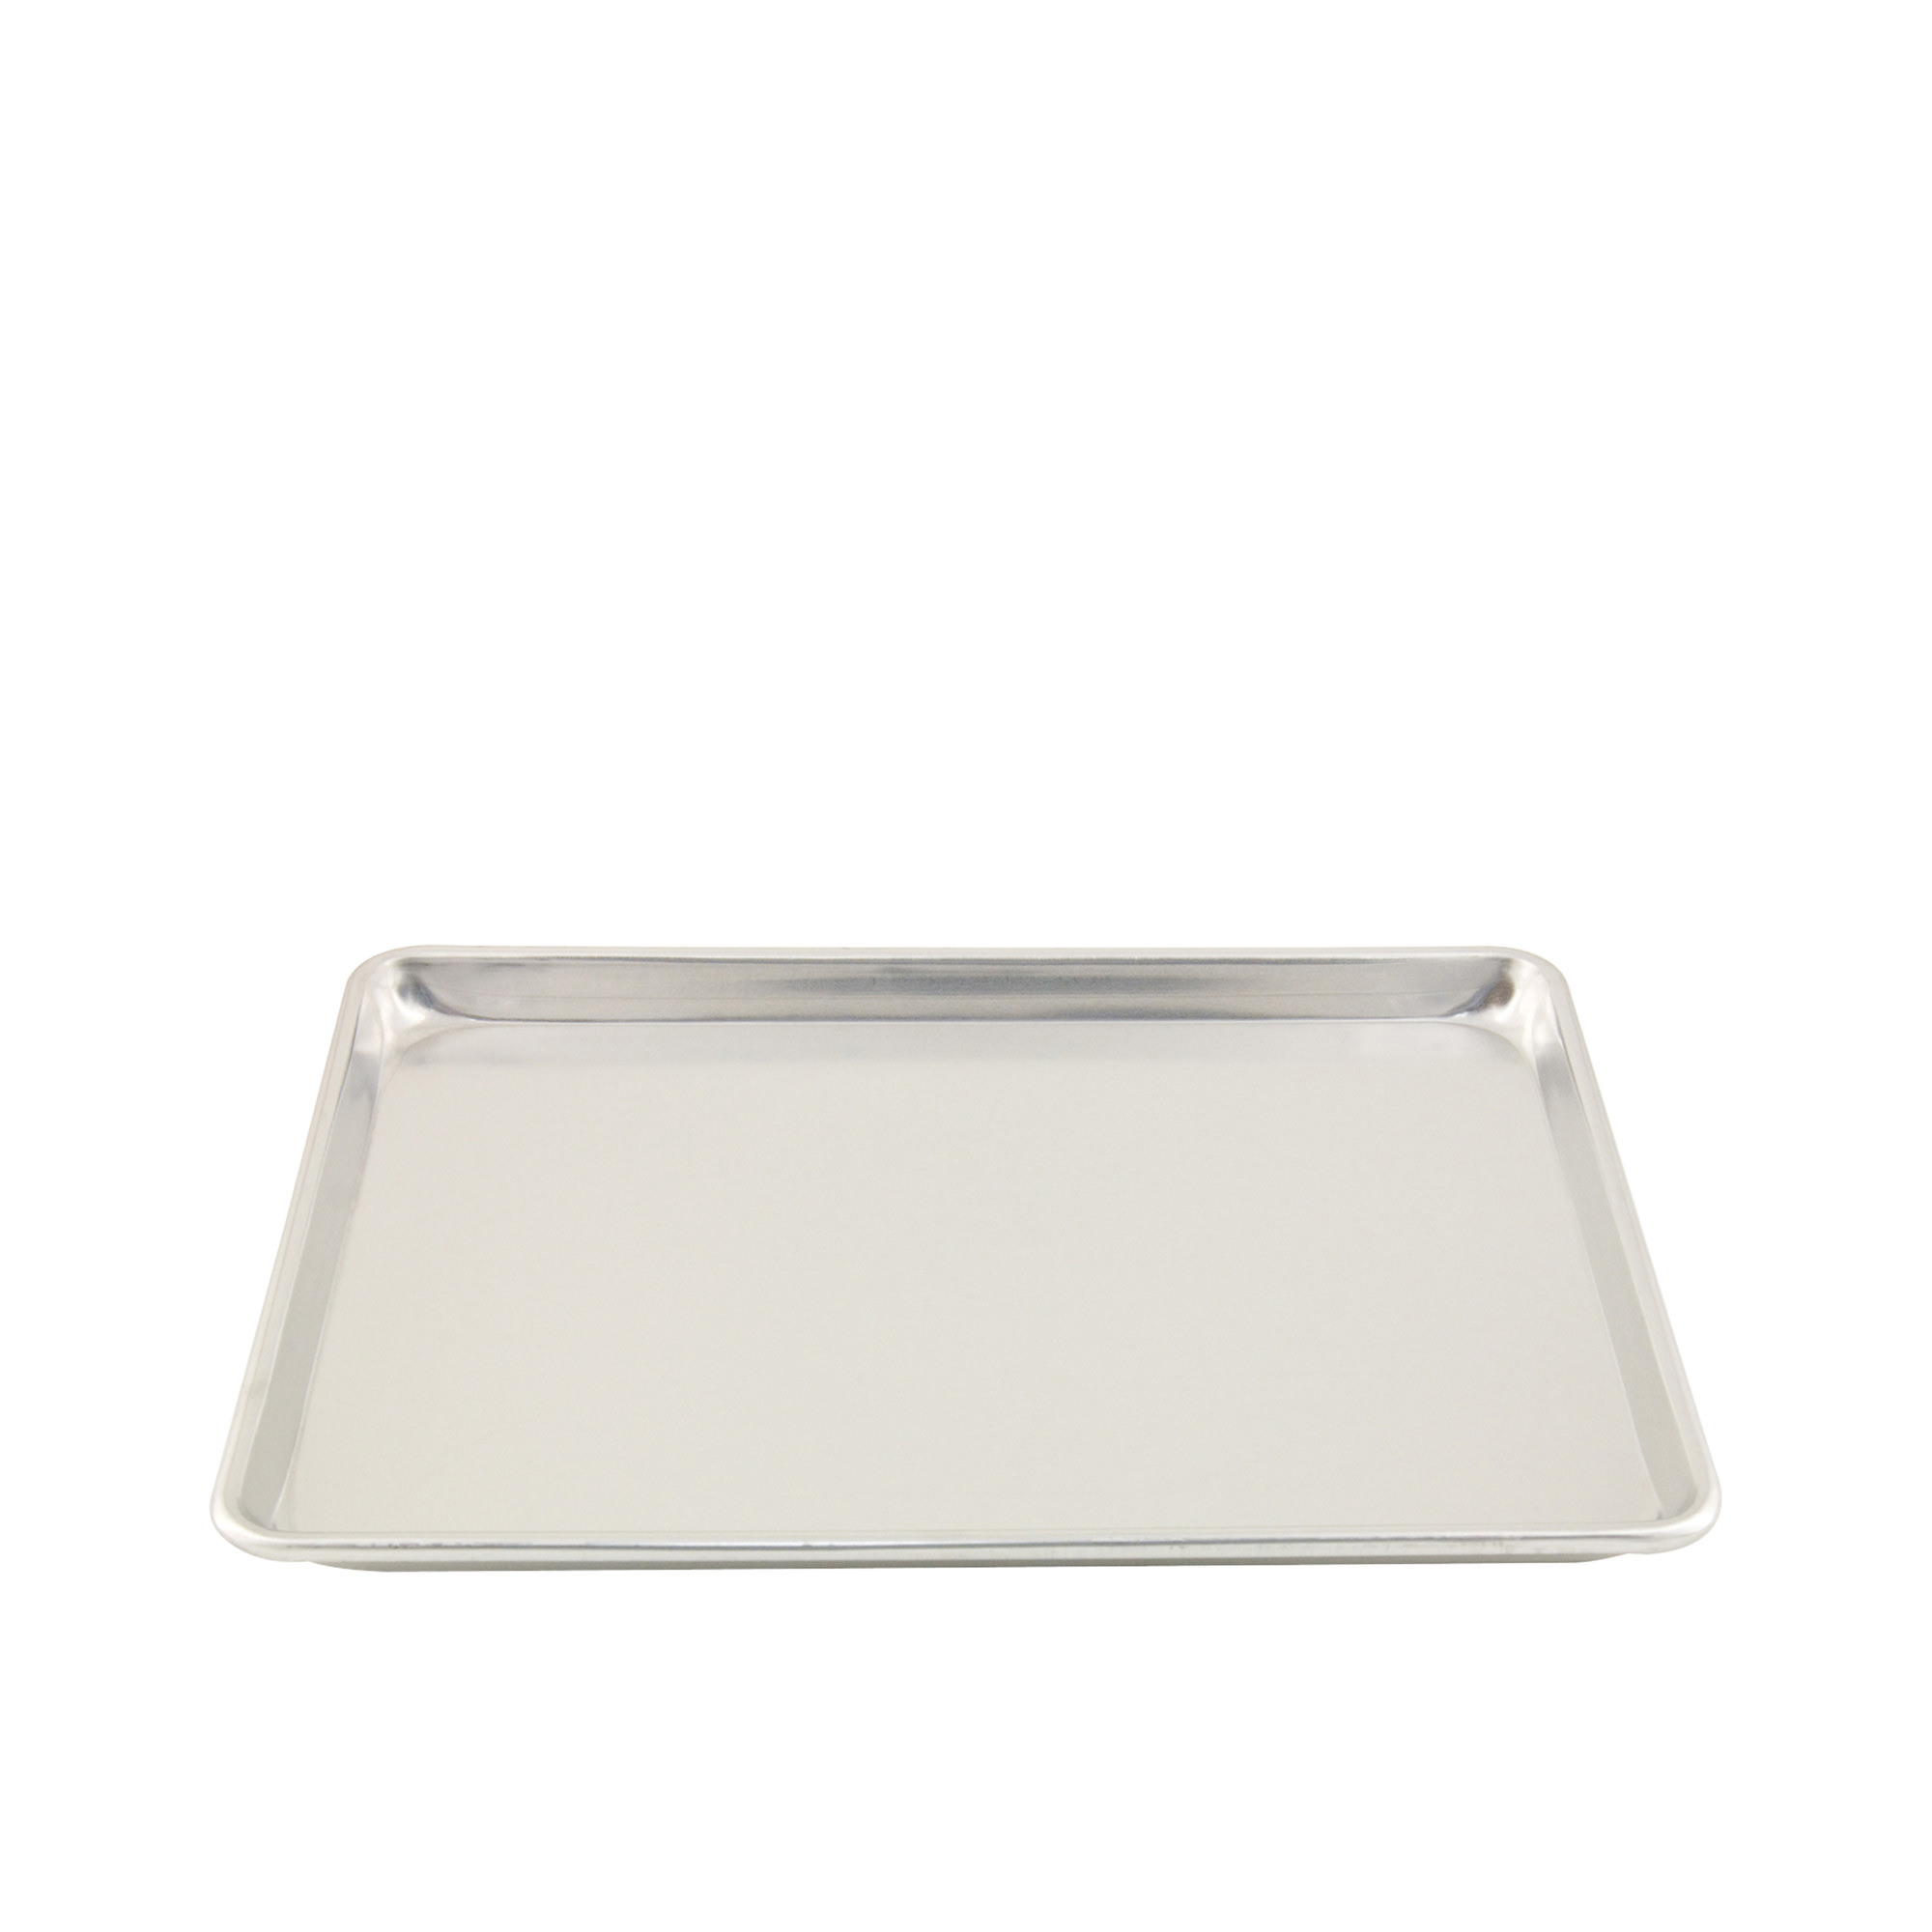 Chef Inox Baking Sheet Aluminium 330x450x25mm